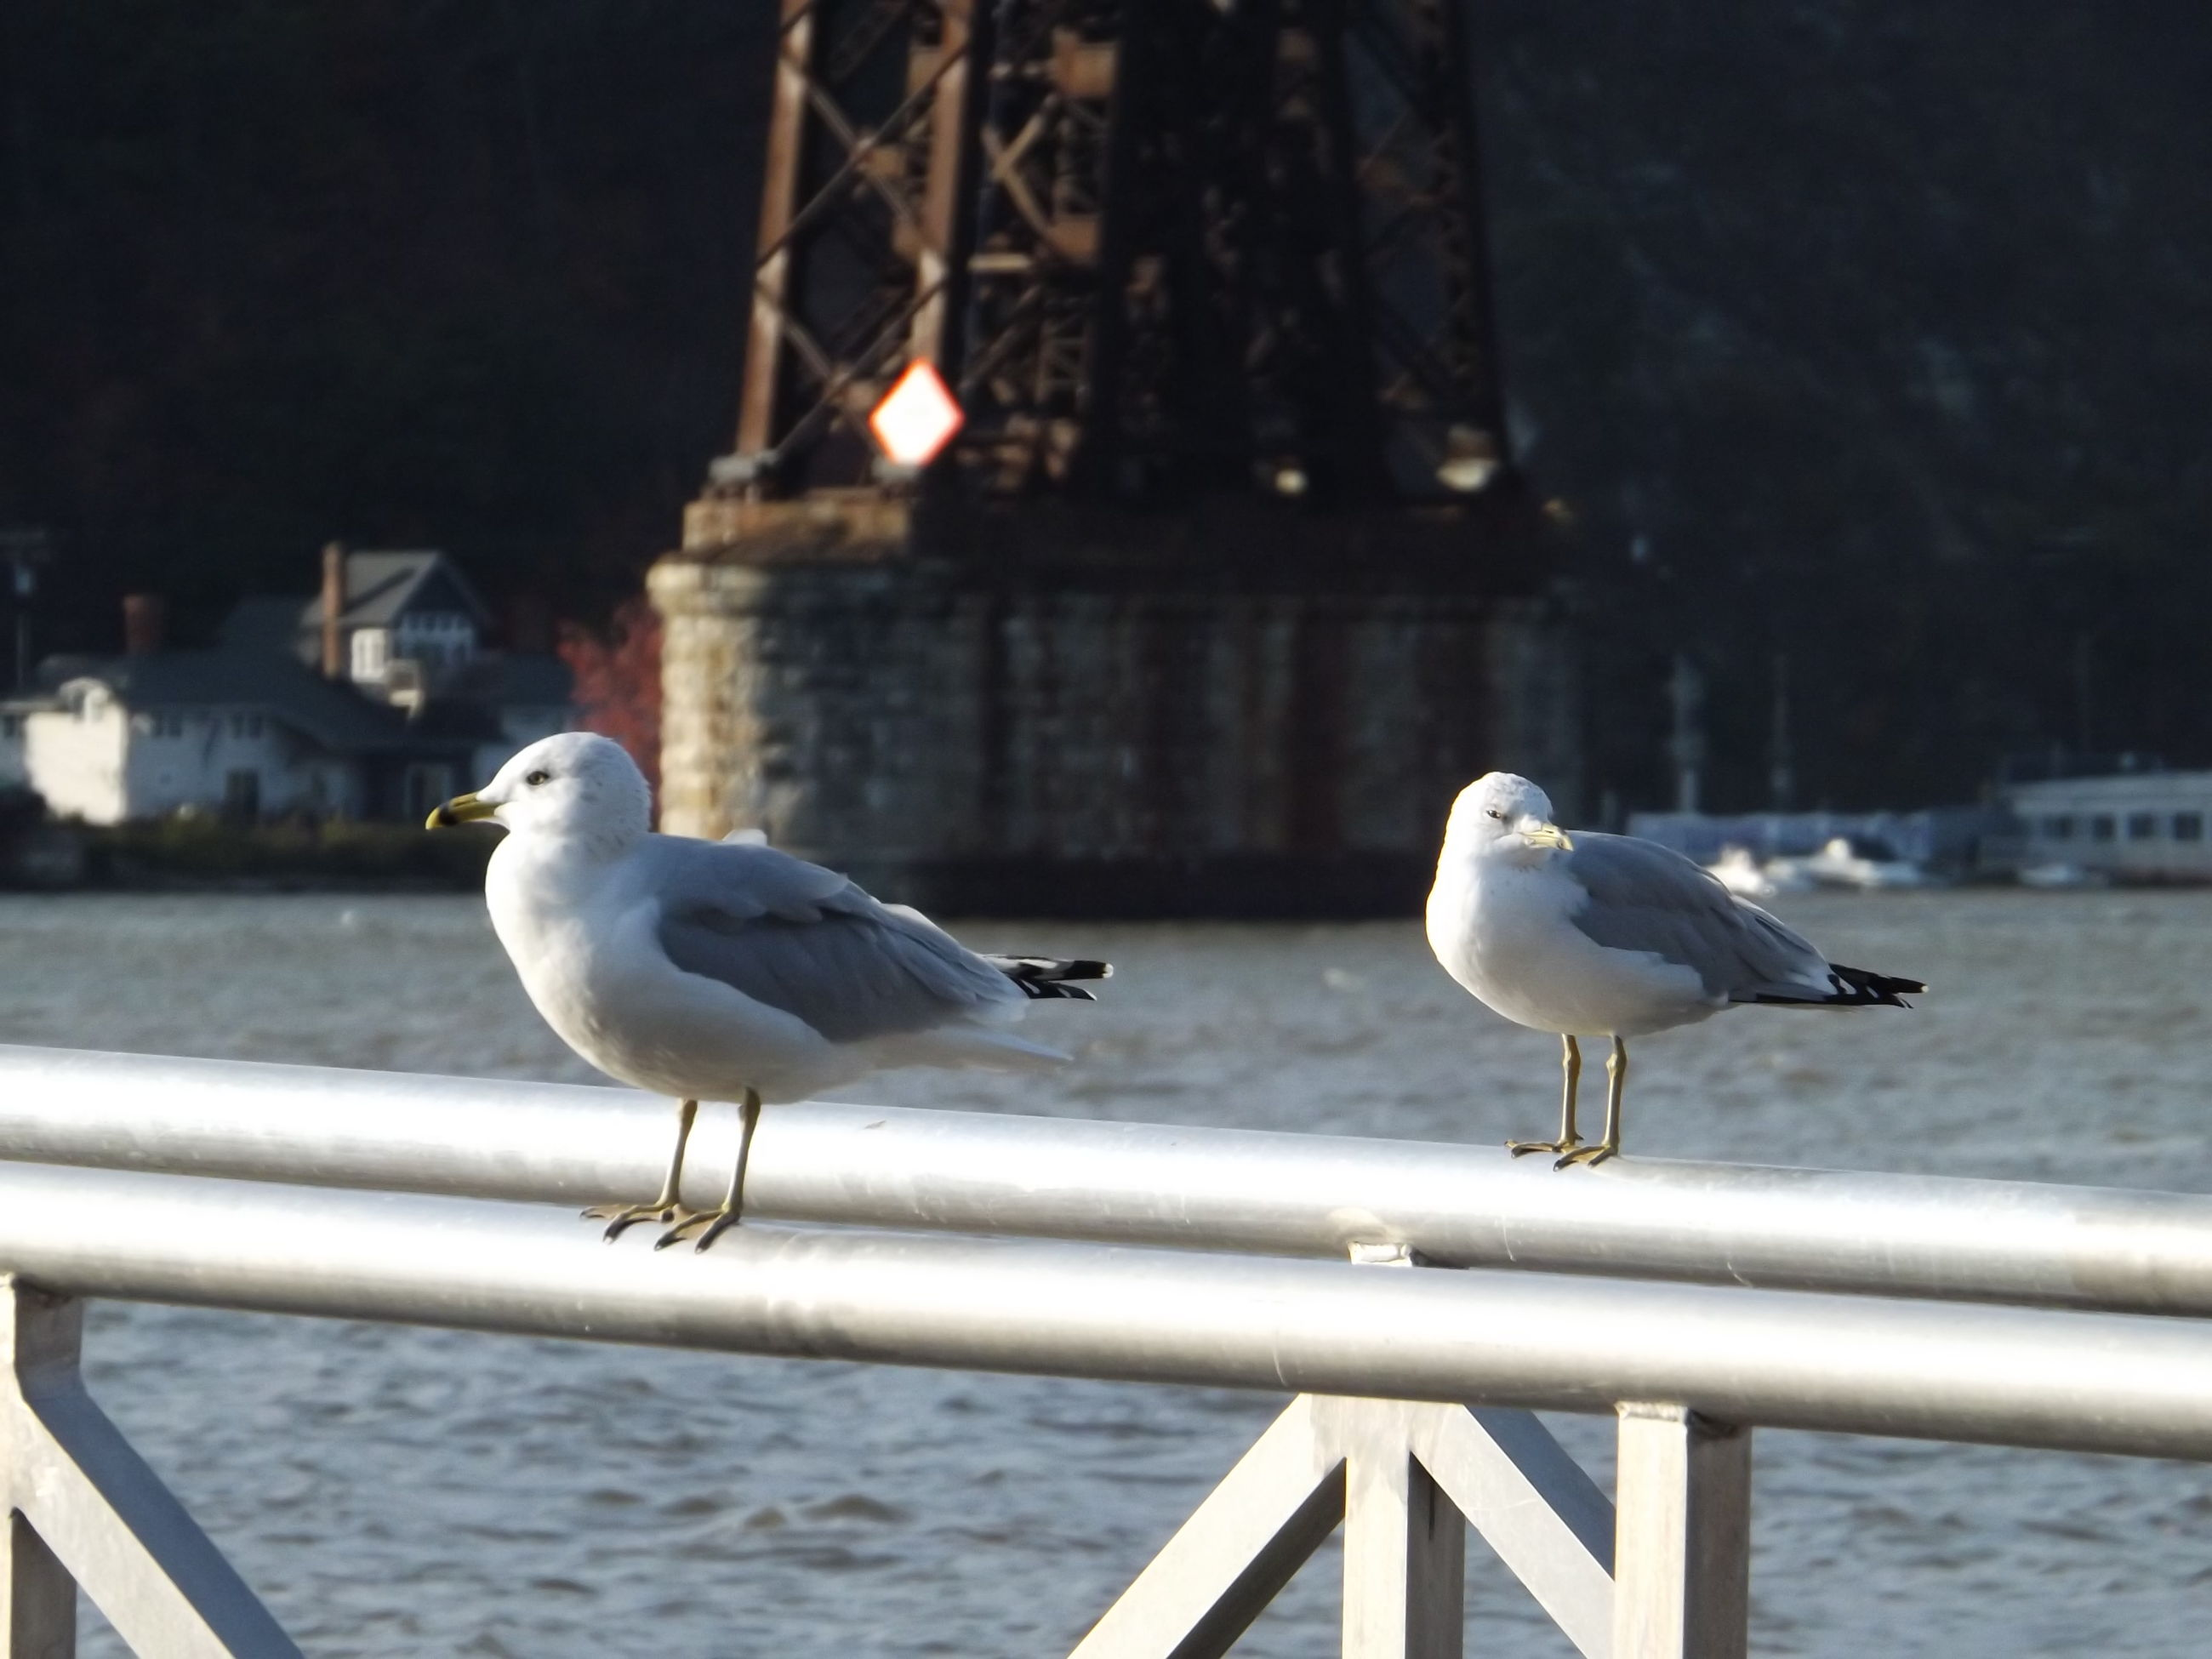 bird, animal themes, animals in the wild, seagull, wildlife, perching, railing, pigeon, focus on foreground, one animal, building exterior, spread wings, built structure, full length, flying, two animals, outdoors, architecture, city, retaining wall